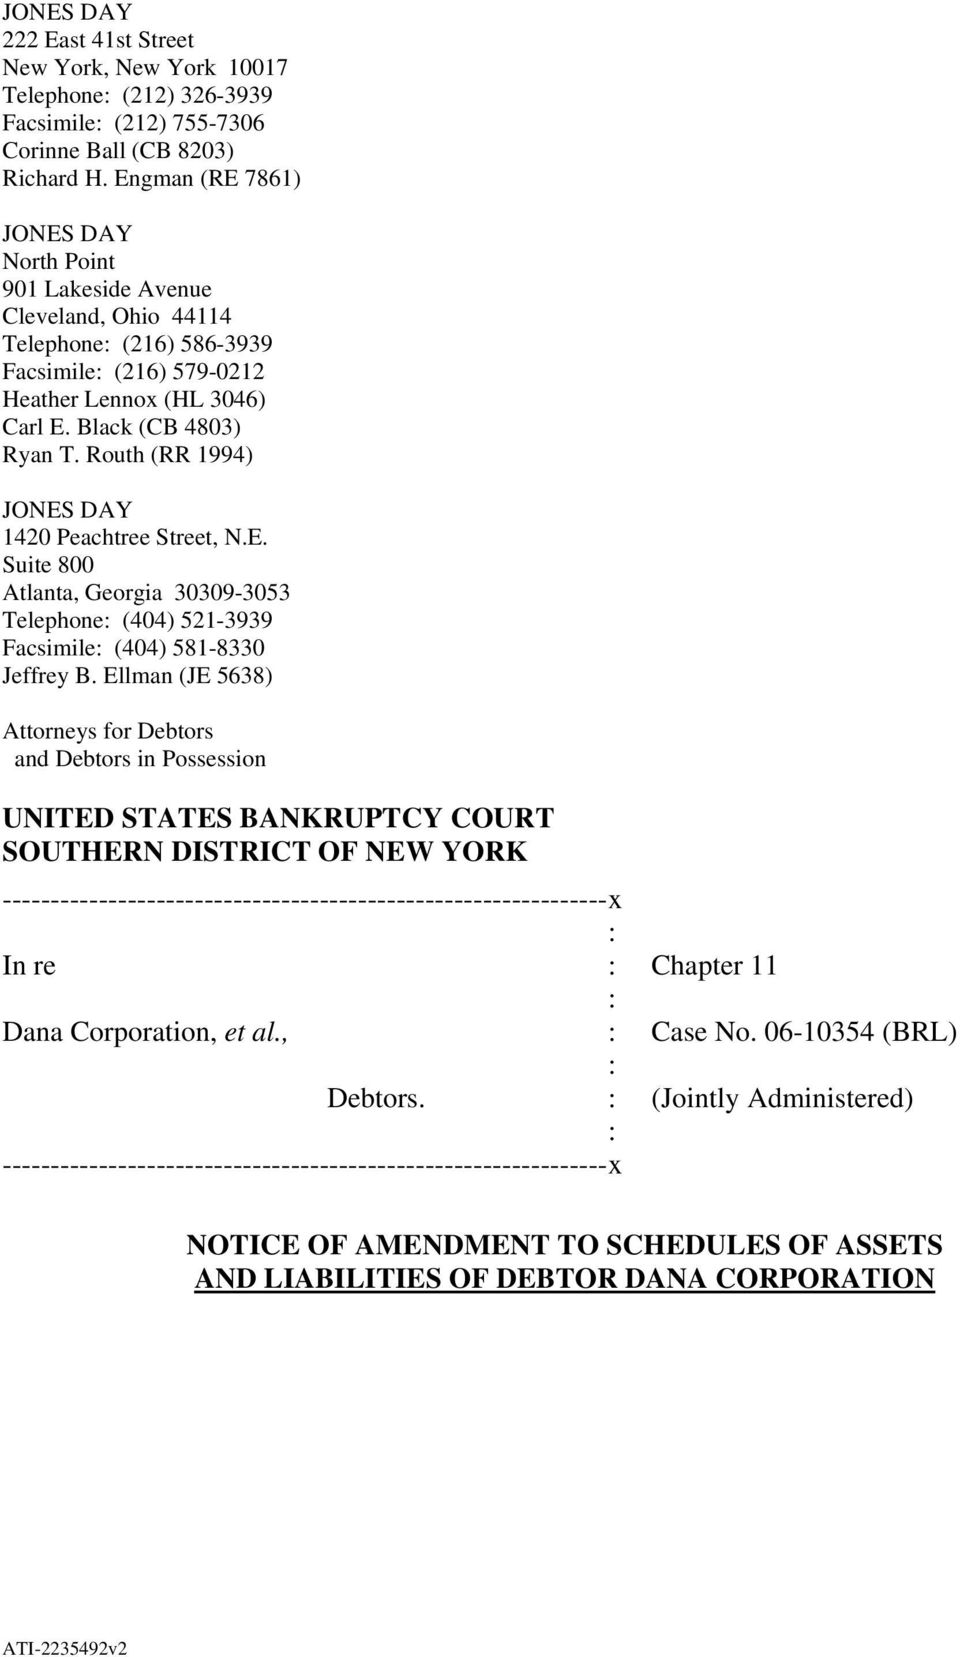 UNITED STATES BANKRUPTCY COURT SOUTHERN DISTRICT OF NEW YORK - PDF